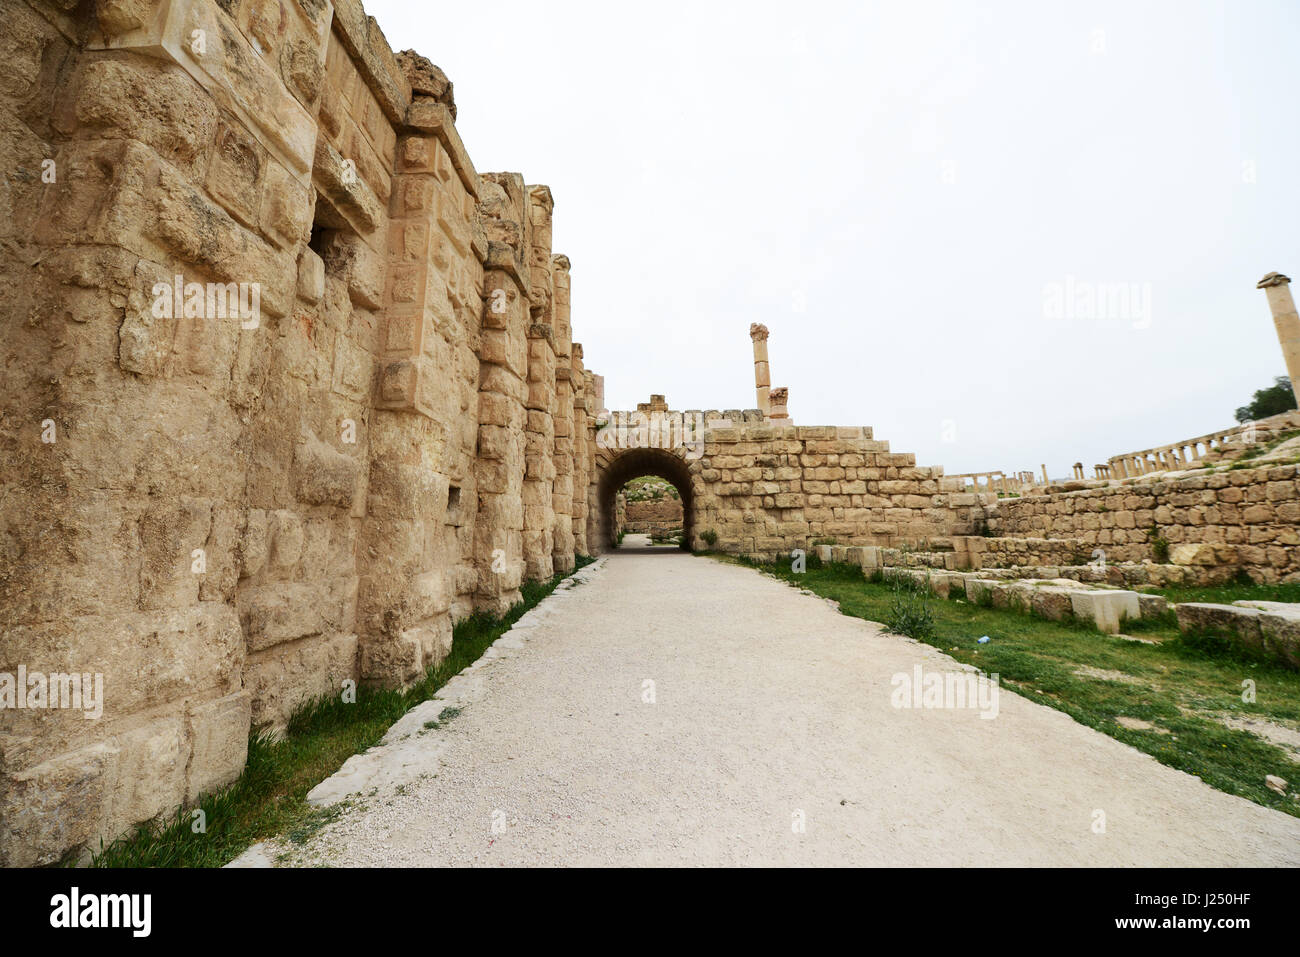 The path leading to the South gate in the ancient Roman city of Jerash in Jordan. - Stock Image